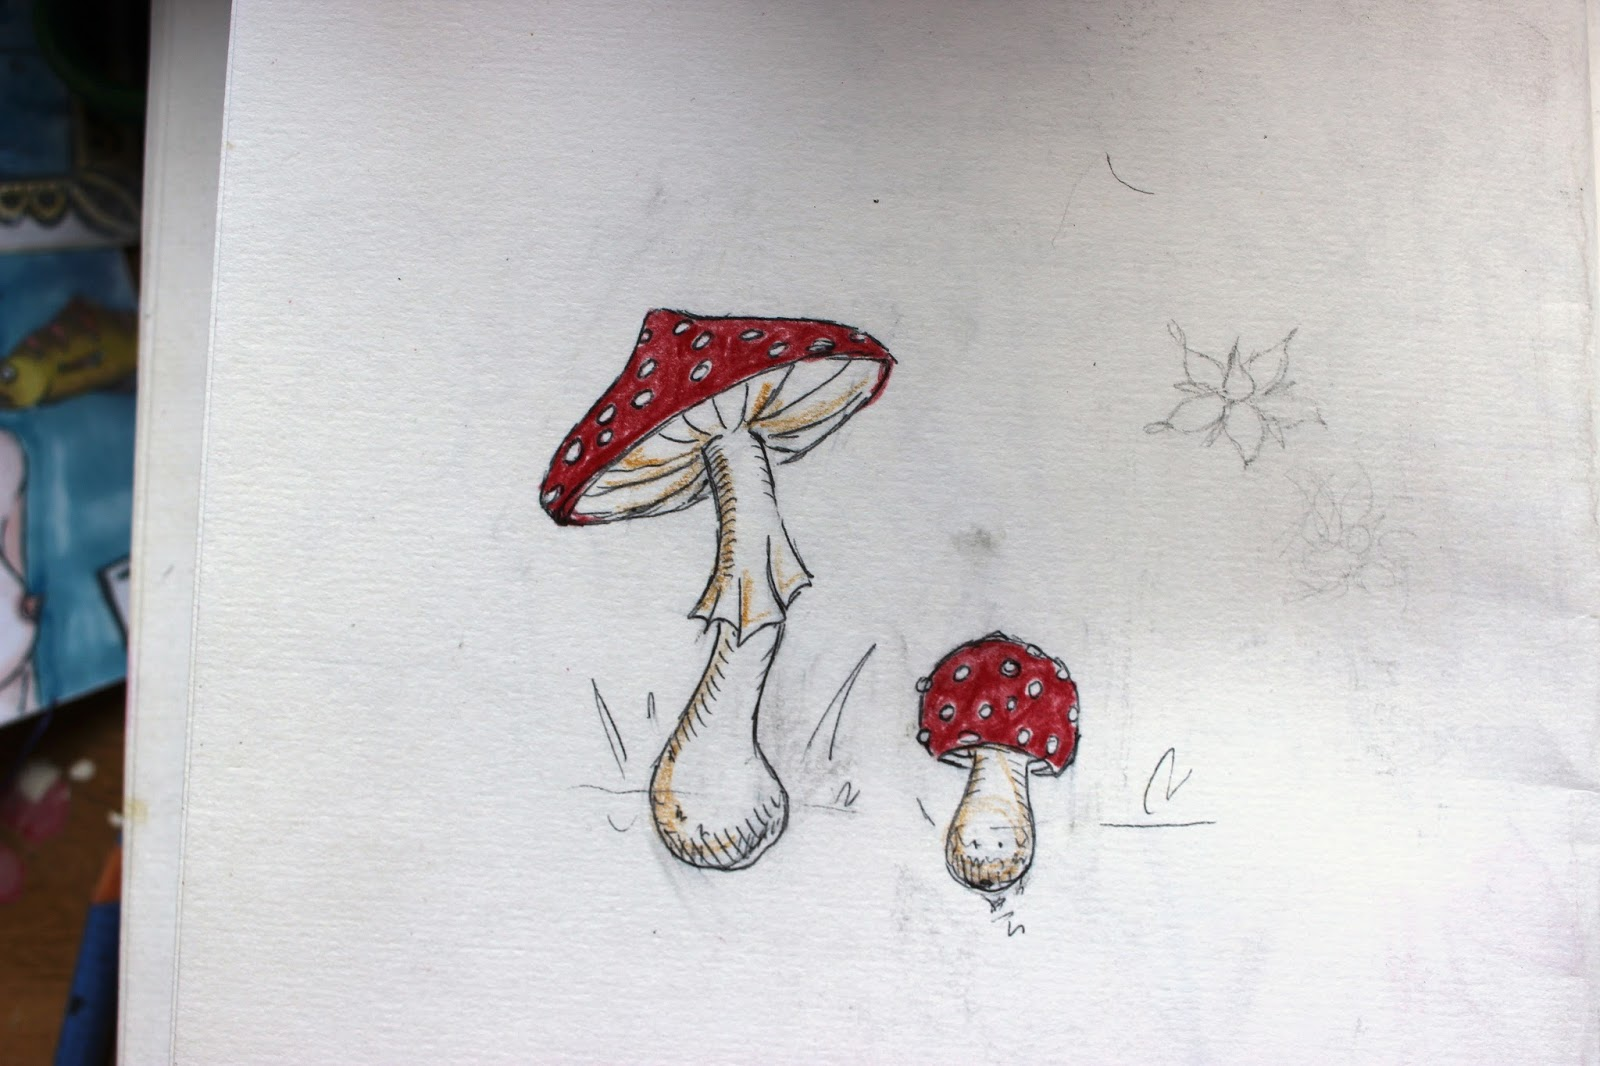 Sketchpad Notebook Sketch Drawing Pencil Colour Mushroom Toadstool